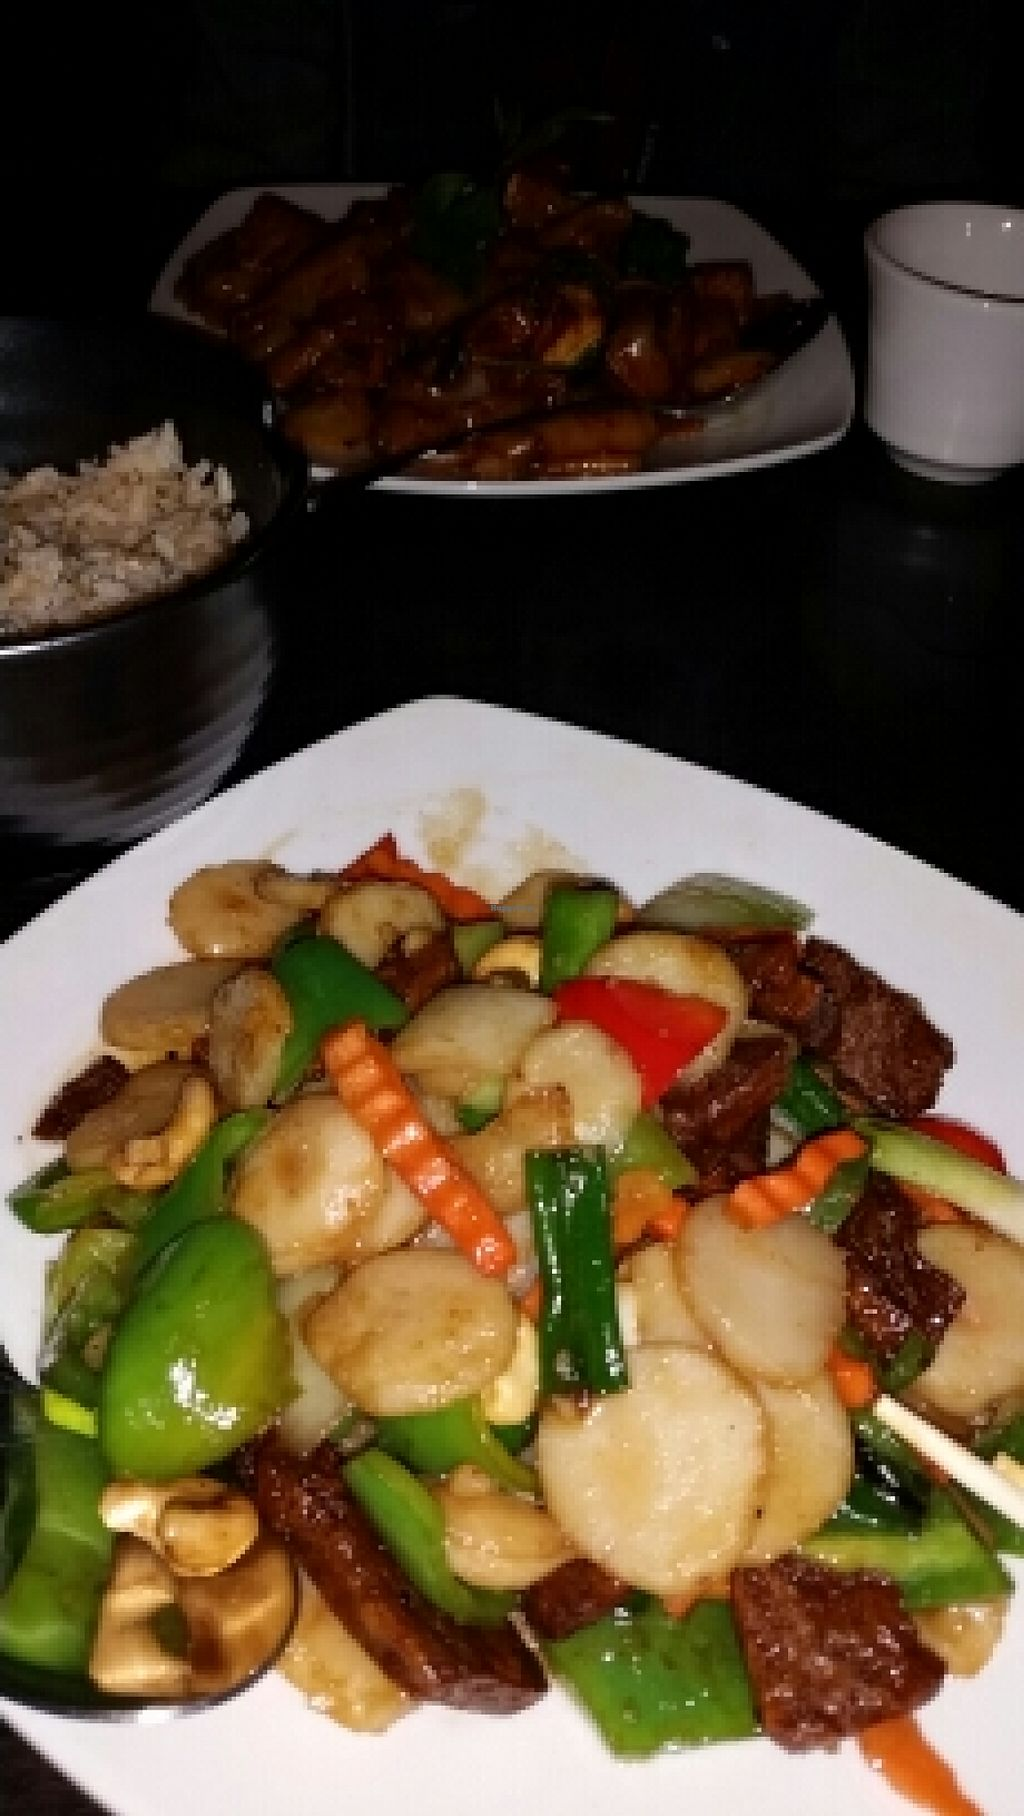 """Photo of Veganic Thai Cafe  by <a href=""""/members/profile/areleous"""">areleous</a> <br/>cashew mock chicken  <br/> January 29, 2016  - <a href='/contact/abuse/image/67161/134134'>Report</a>"""